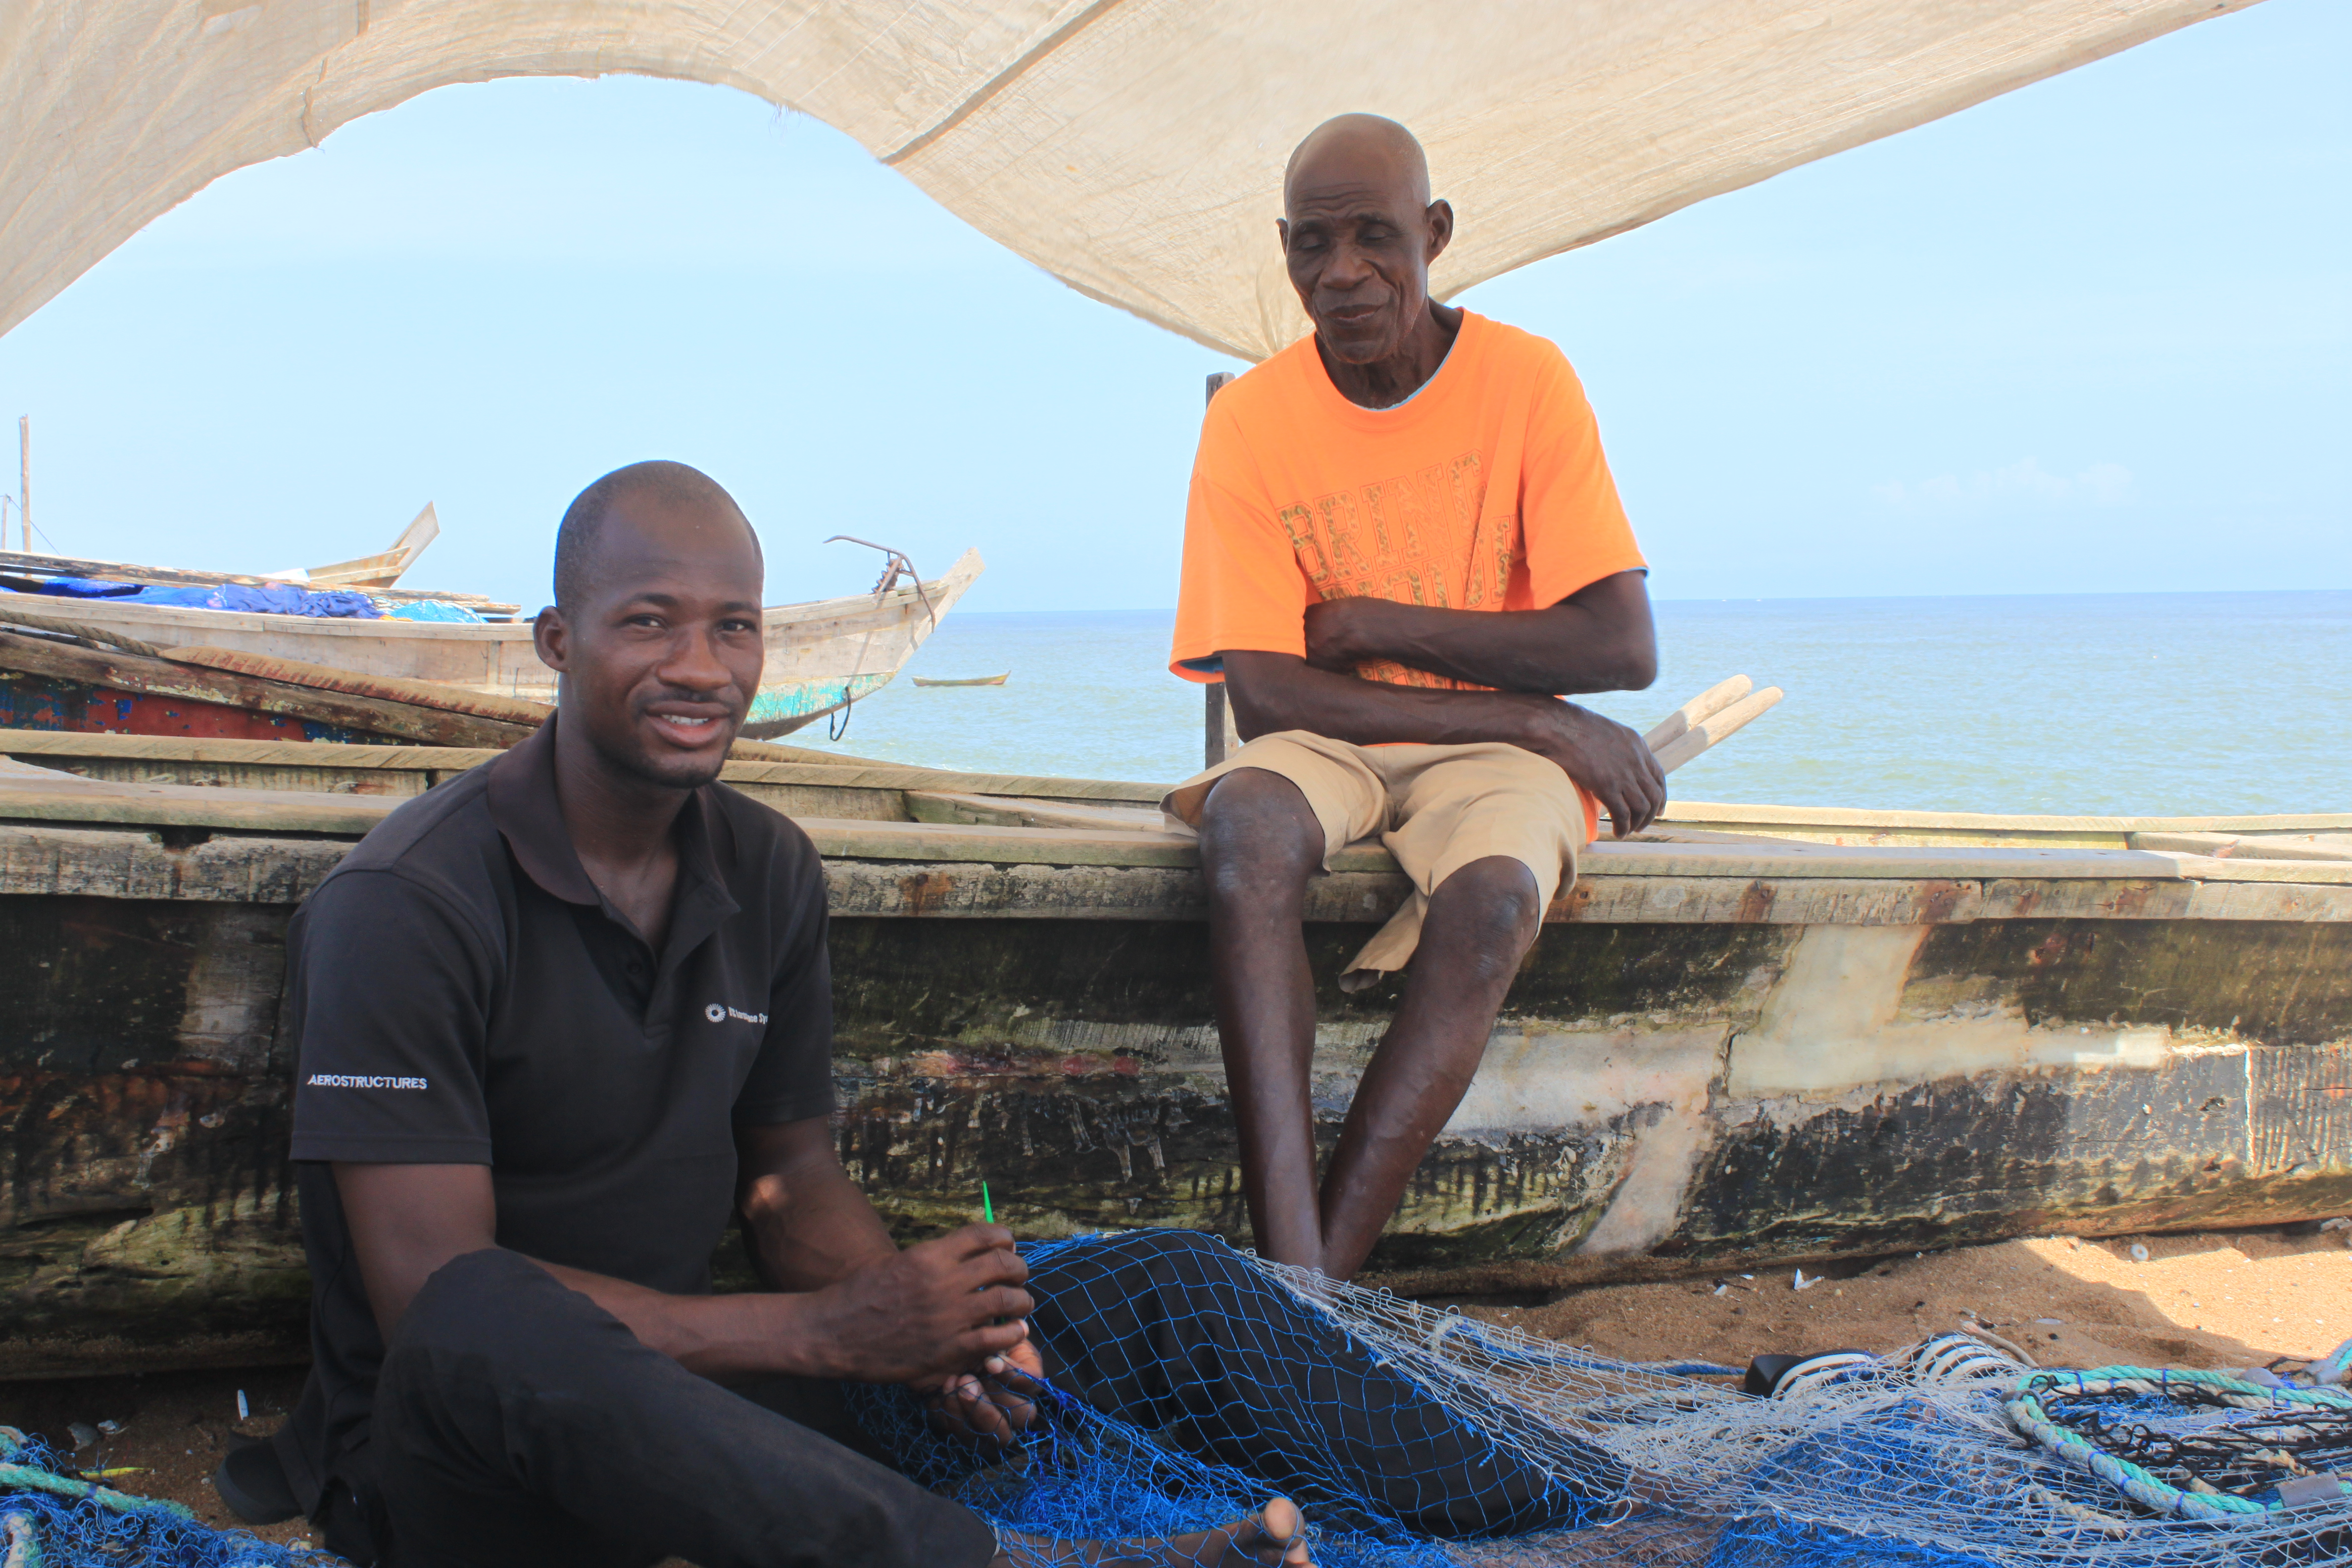 Fishermen work together, making nets to catch fish in Abidjan, Côte d'Ivoire